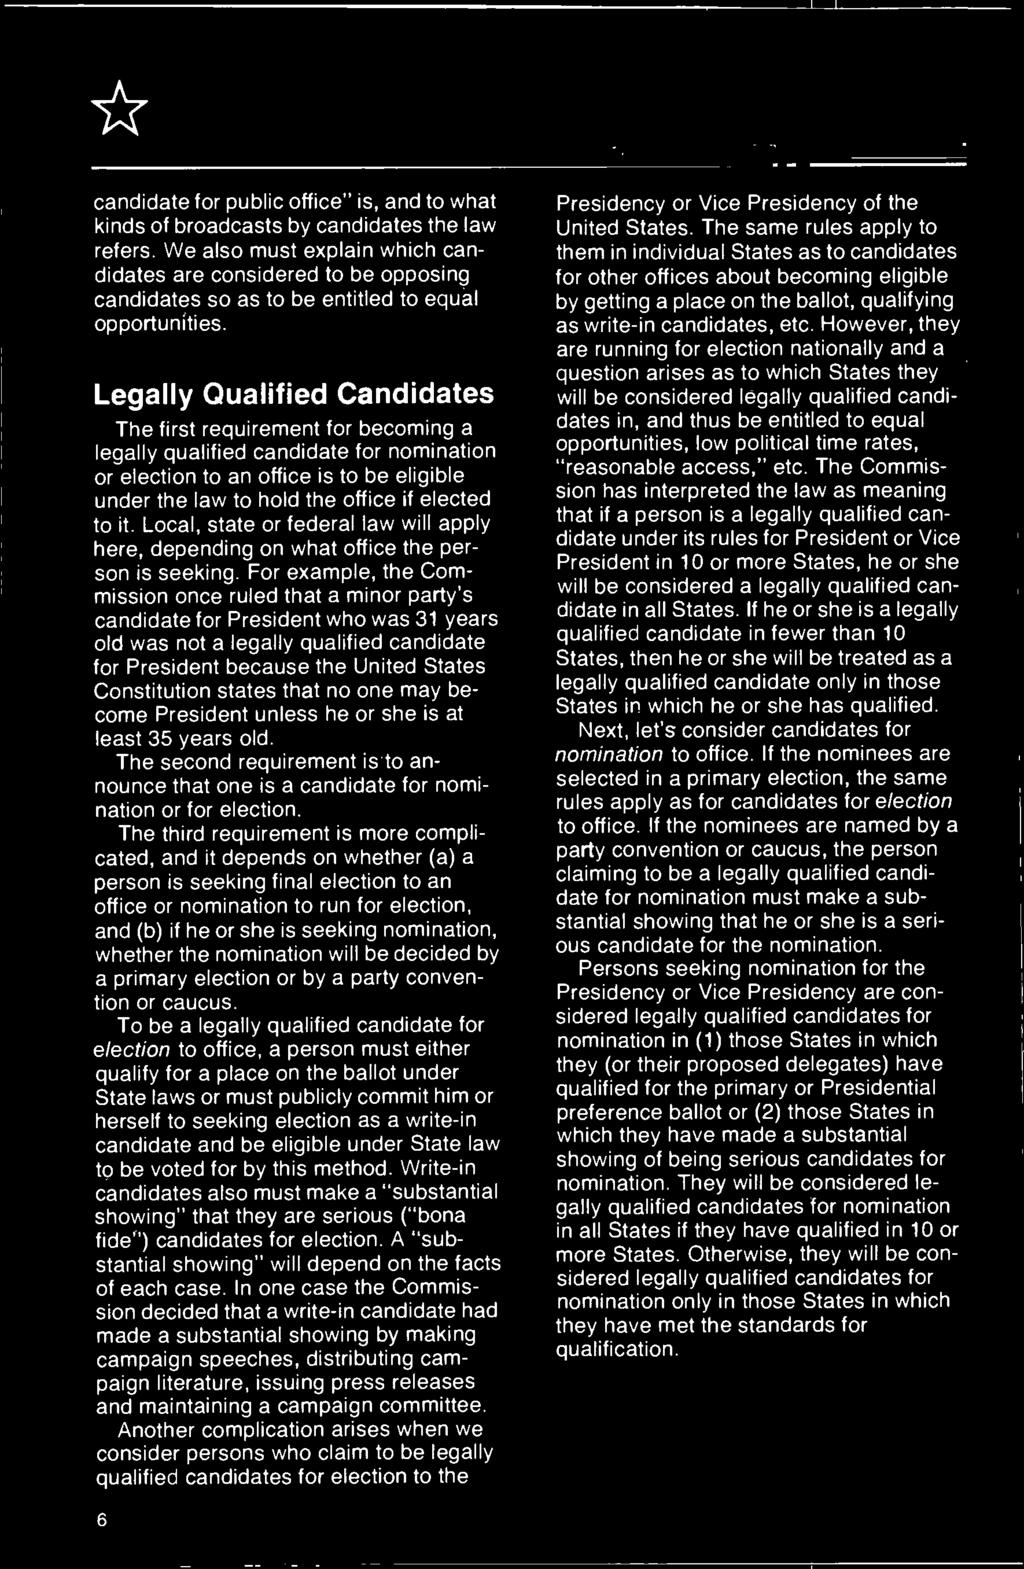 Legally Qualified Candidates The first requirement for becoming a legally qualified candidate for nomination or election to an office is to be eligible under the law to hold the office if elected to